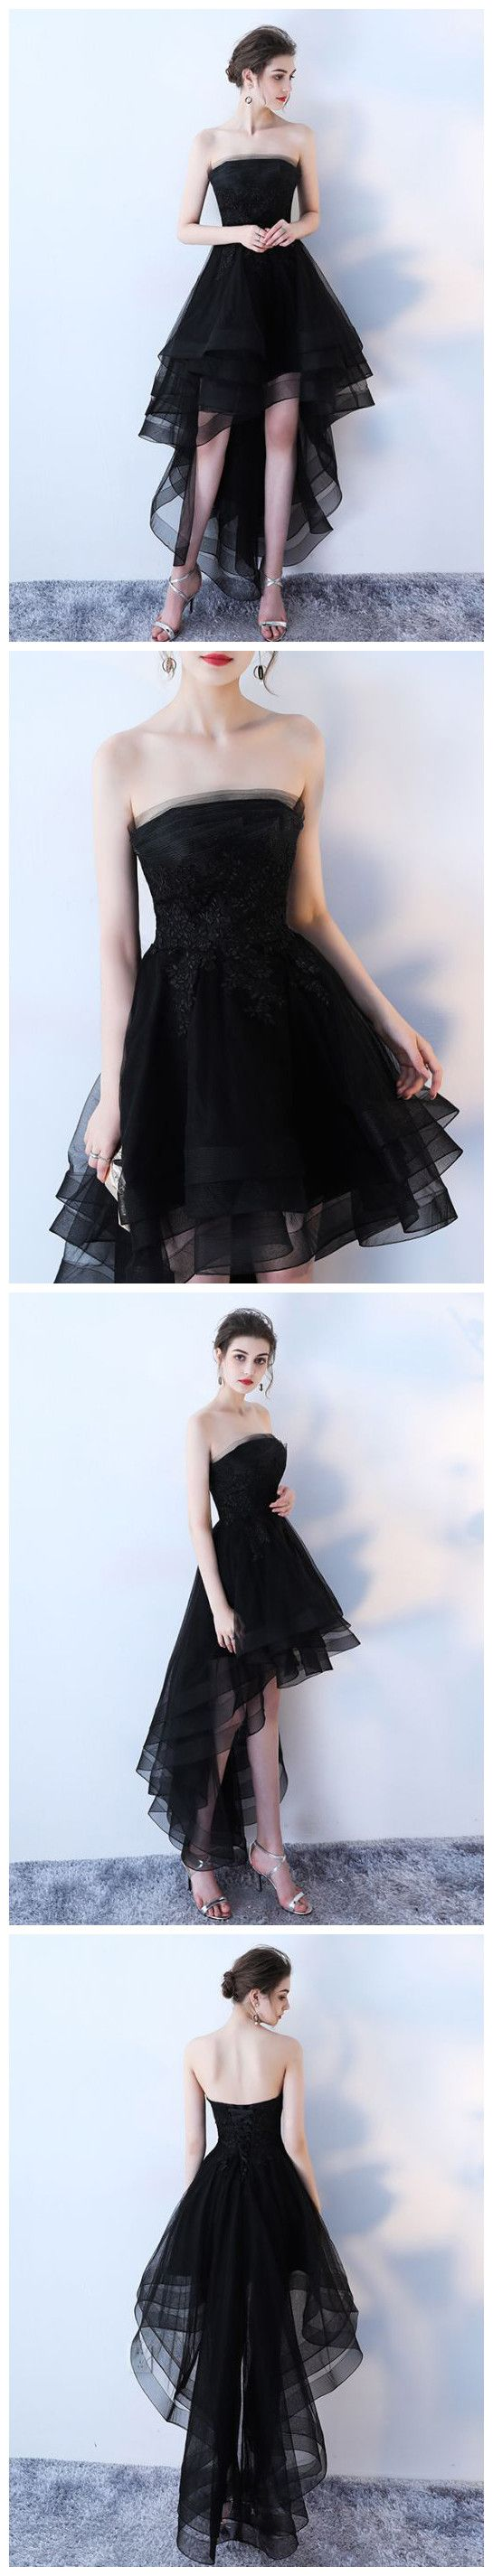 47bdf0497f5 CHIC A-LINE BLACK STRAPLESS SIMPLE TULLE HIGH LOW PROM DRESS EVENING DRESS  AM584